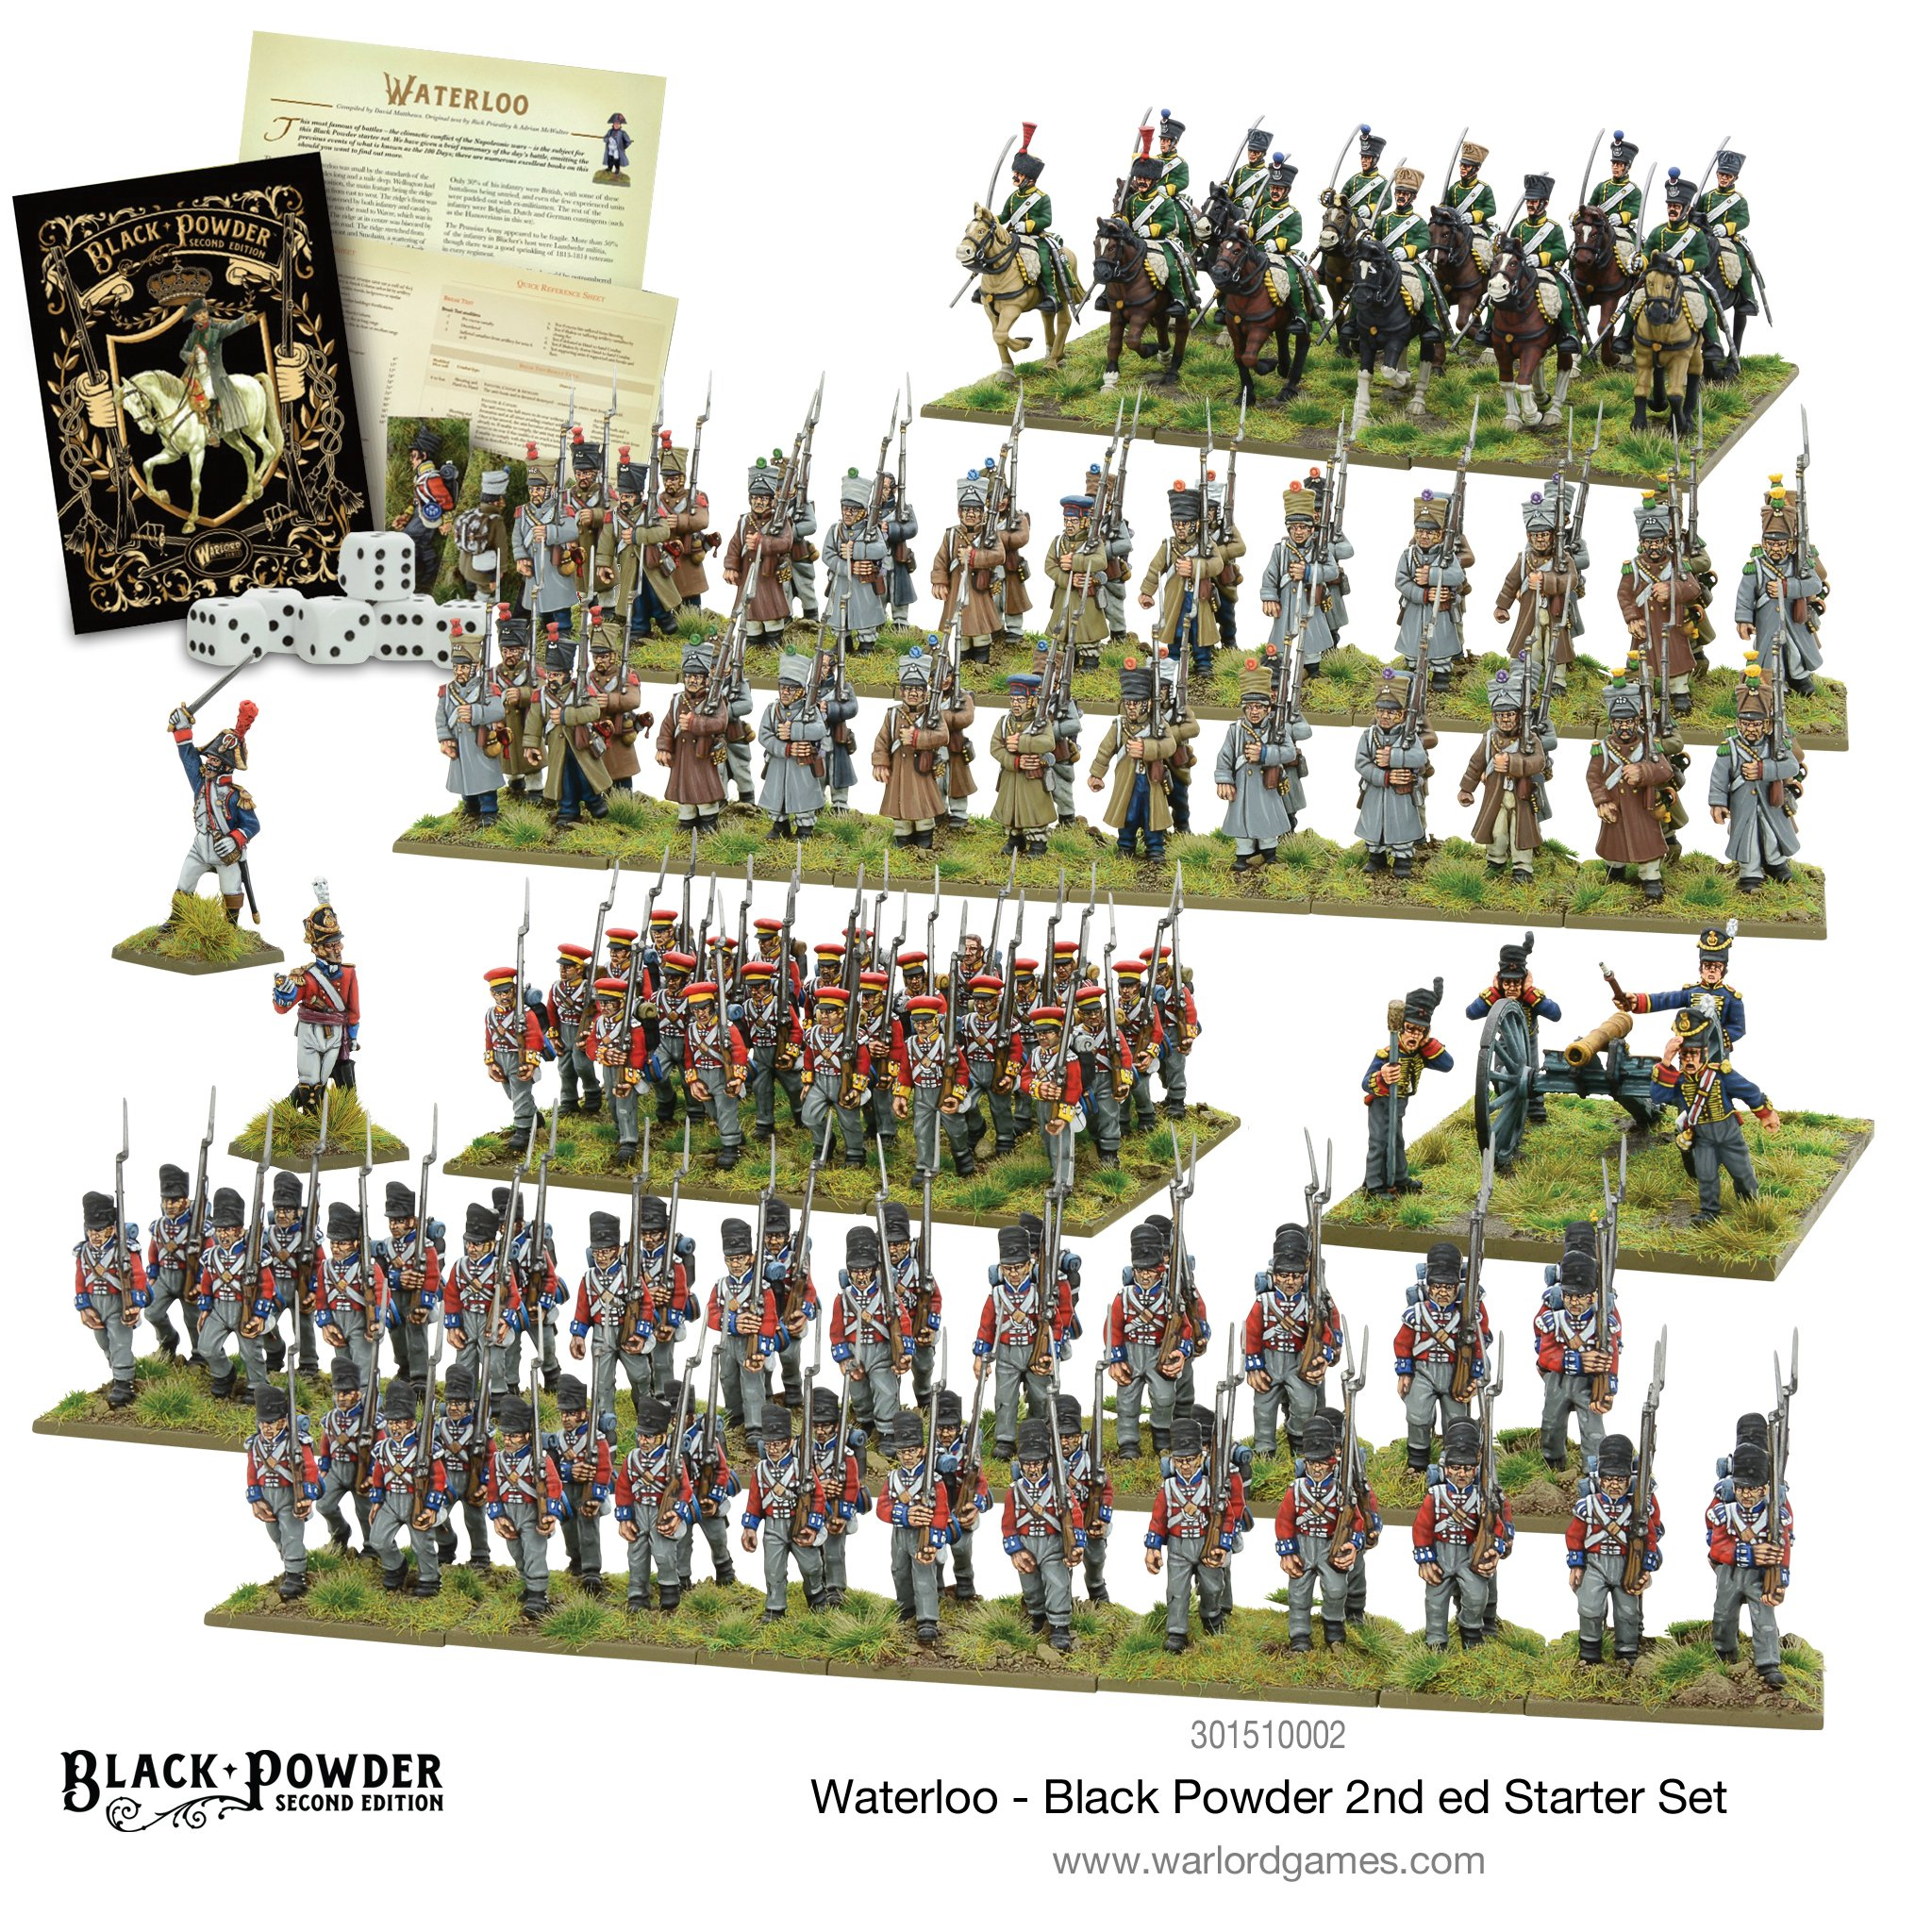 Waterloo - Black Powder Starter Set - 2nd Edition